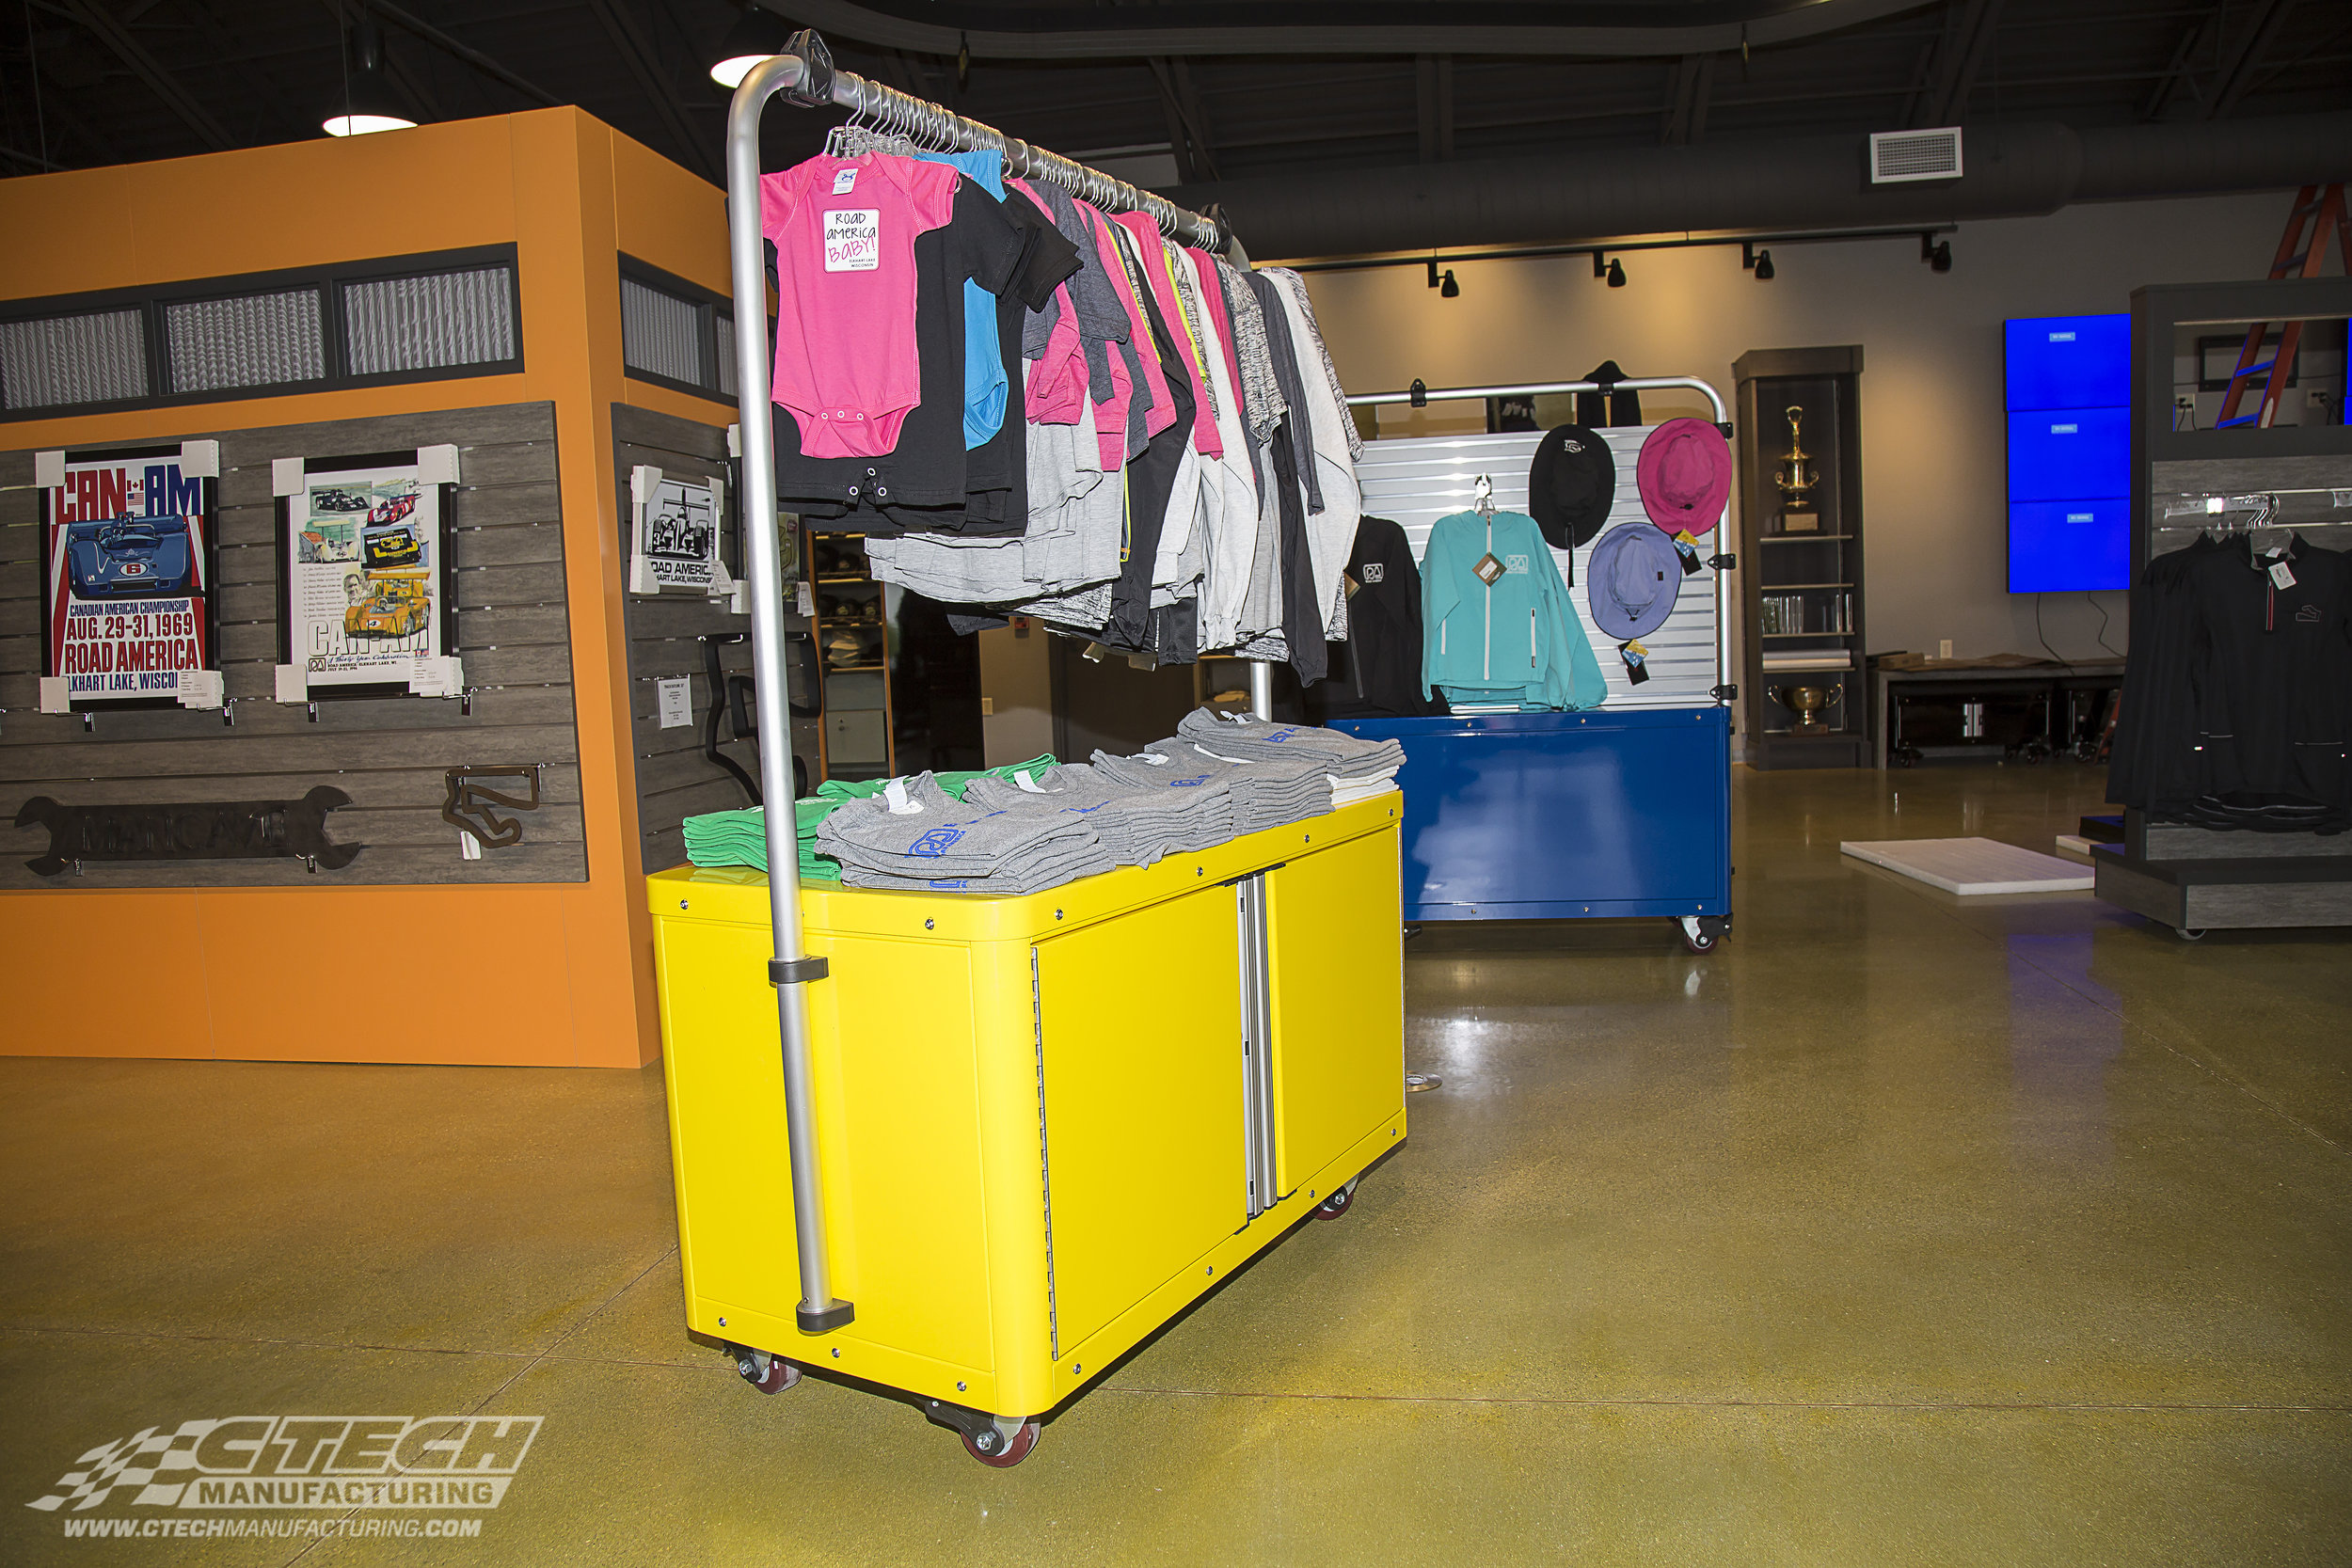 Retail display caster carts have never looked so good! The finishing quality and adaptability of CTECH Caster Carts makes them excellent platforms for retail display and stocking applications.